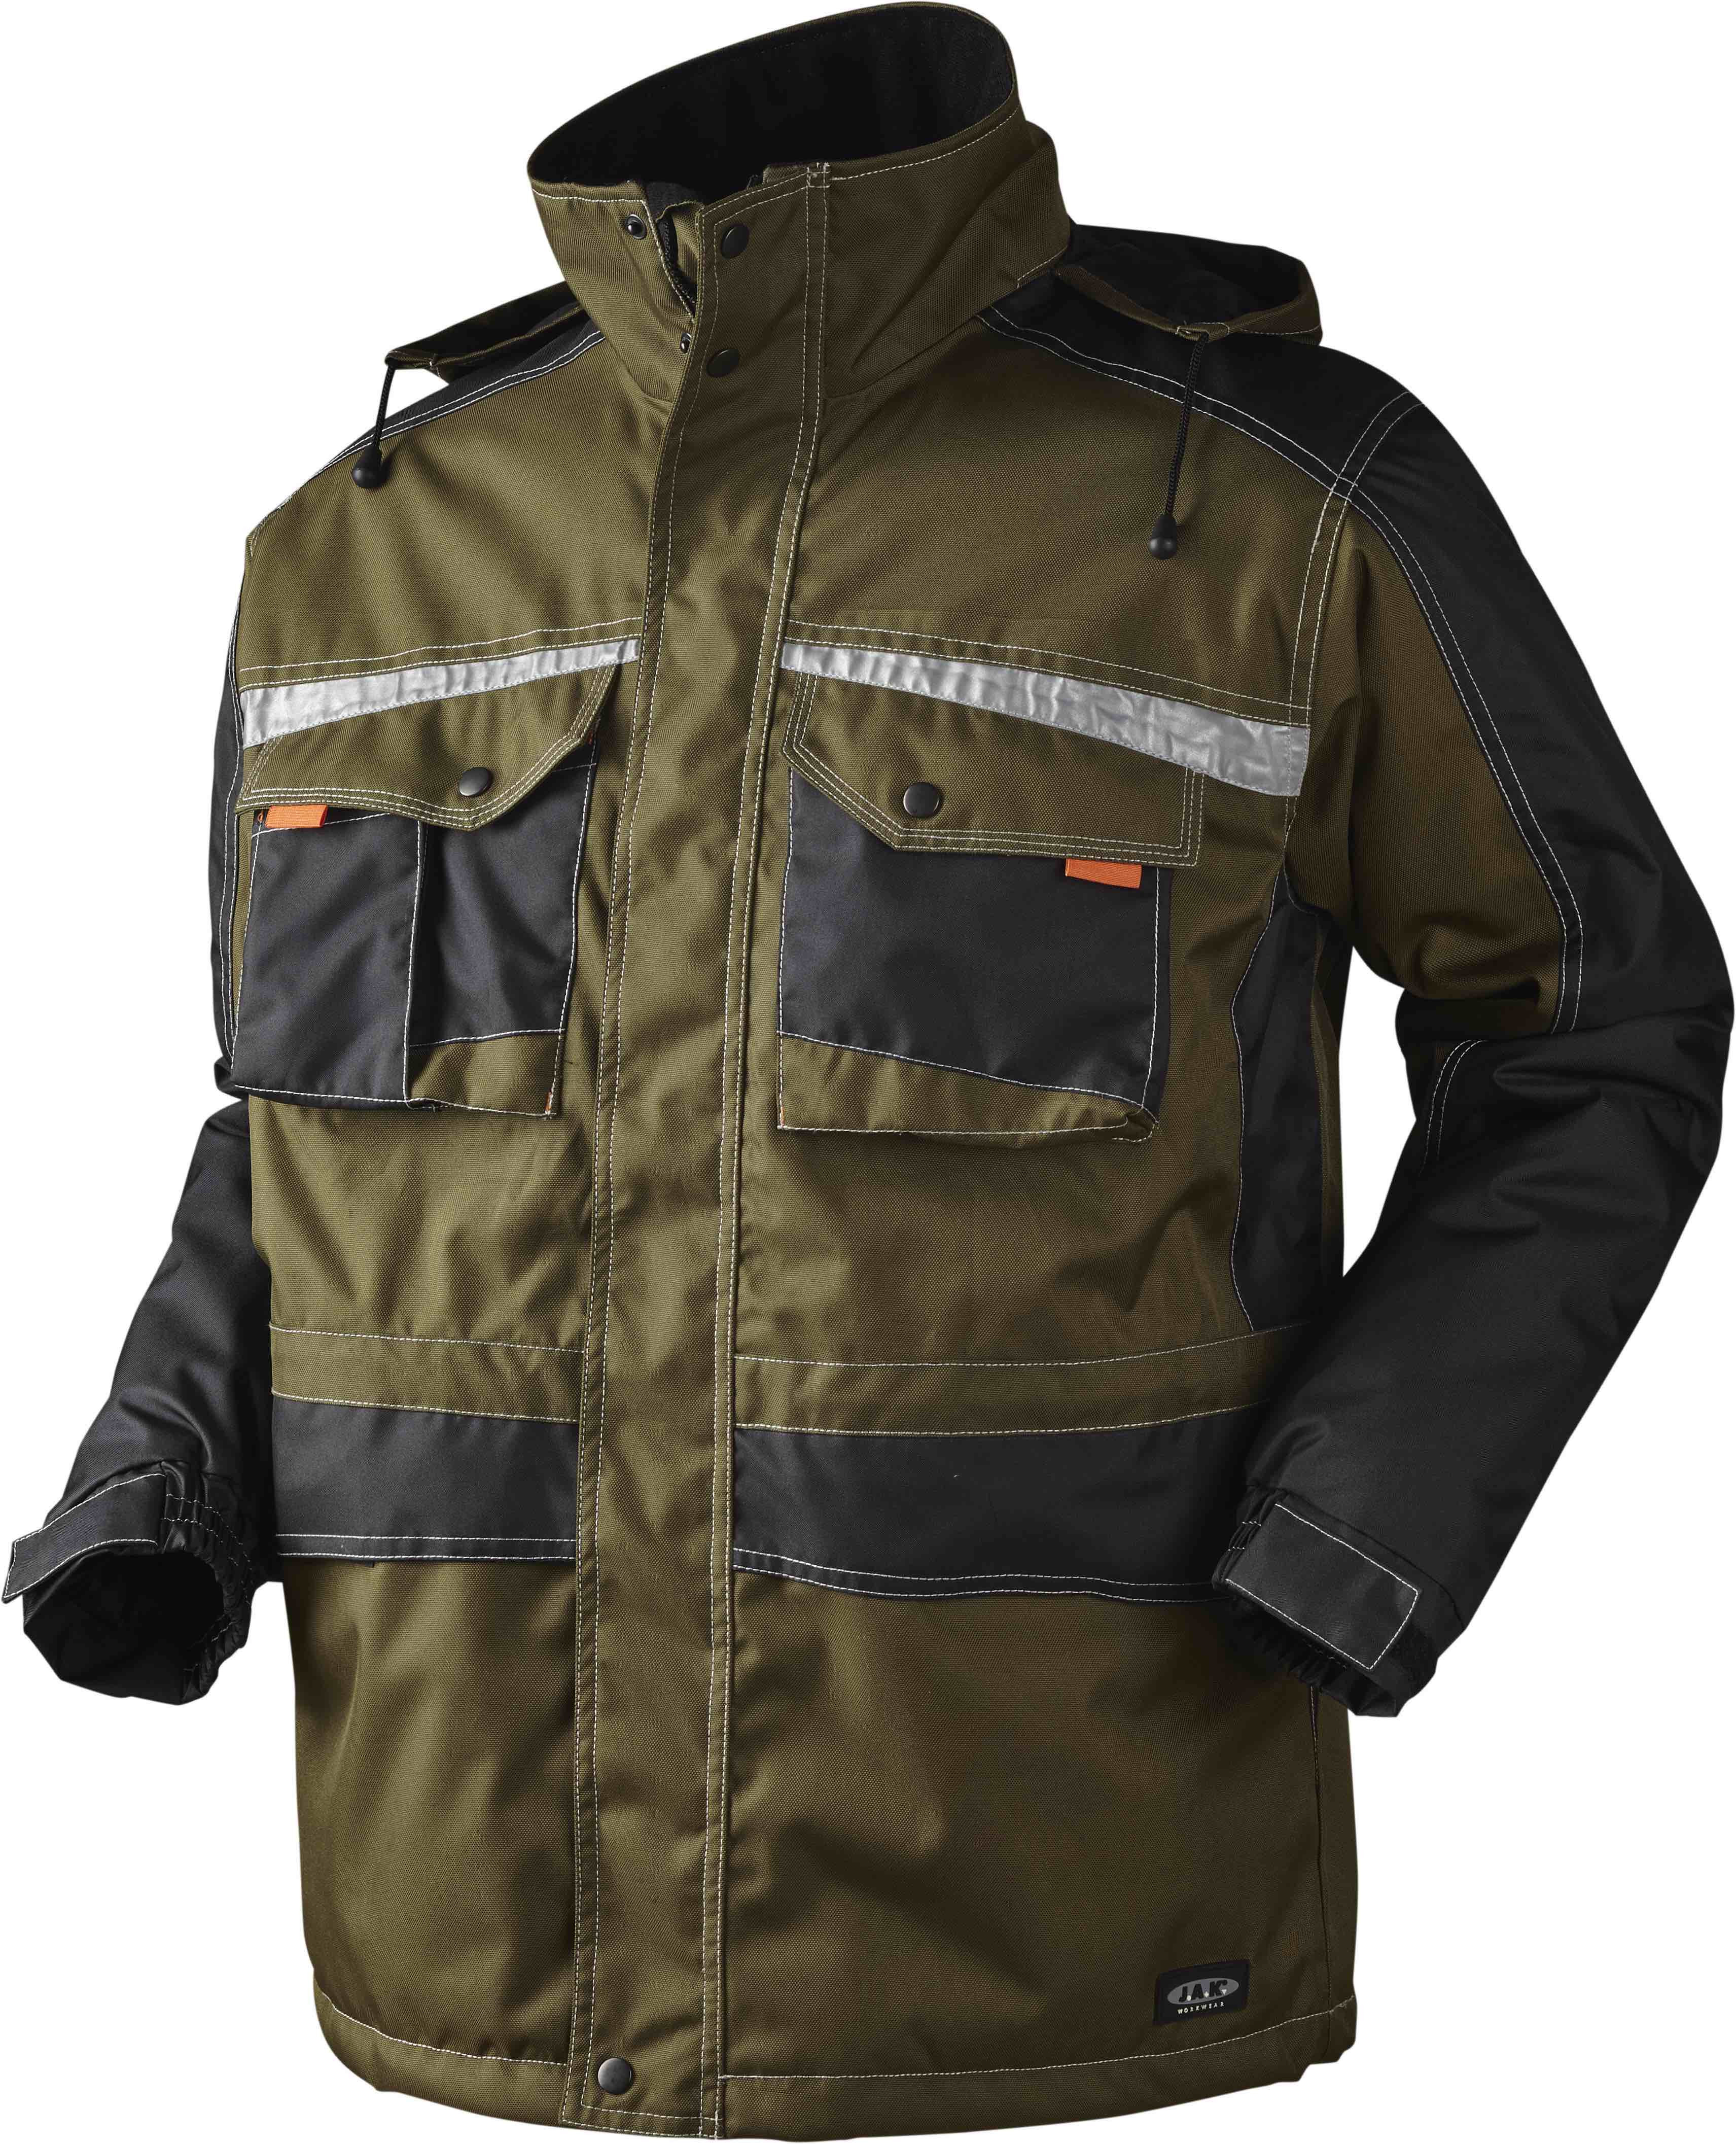 Parka, 9232 - Army/Sort